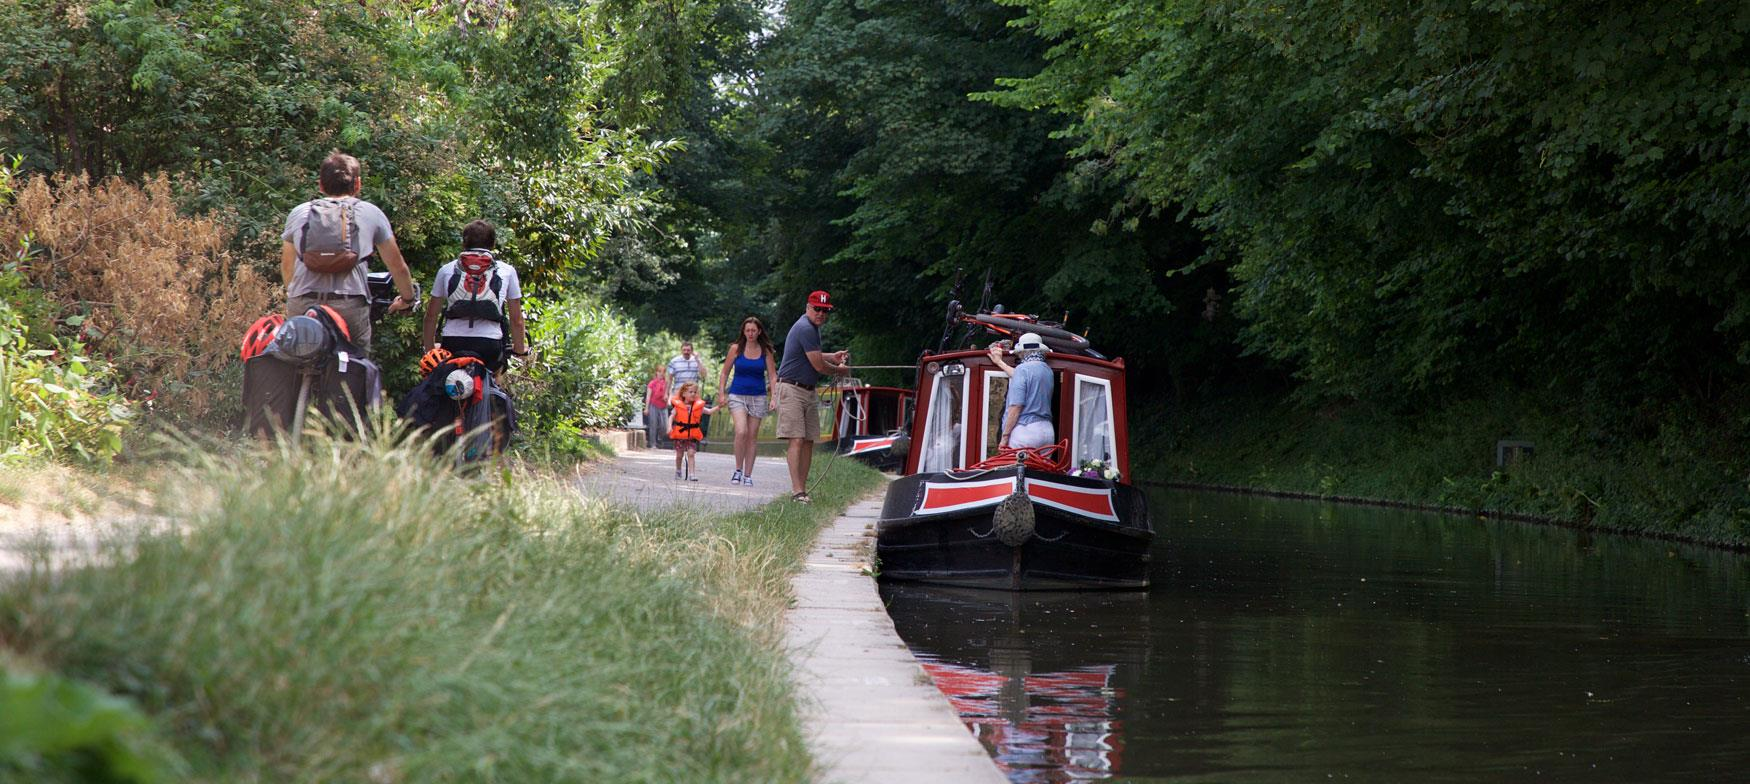 Cycling alongside Kennet and Avon Canal at Avoncliff